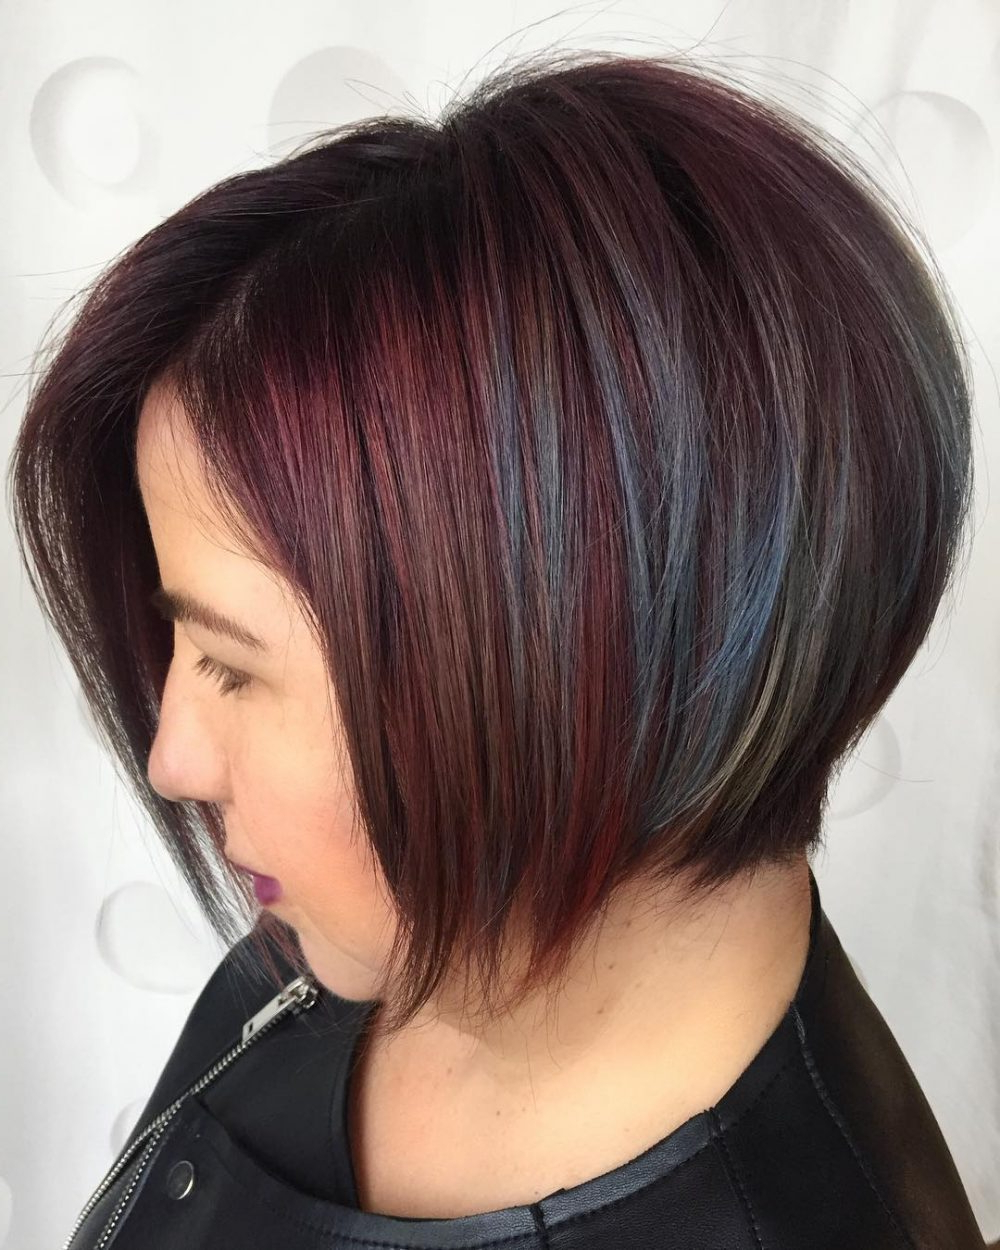 34 Greatest Short Haircuts And Hairstyles For Thick Hair For 2018 Pertaining To Short Haircut For Thick Wavy Hair (View 8 of 25)